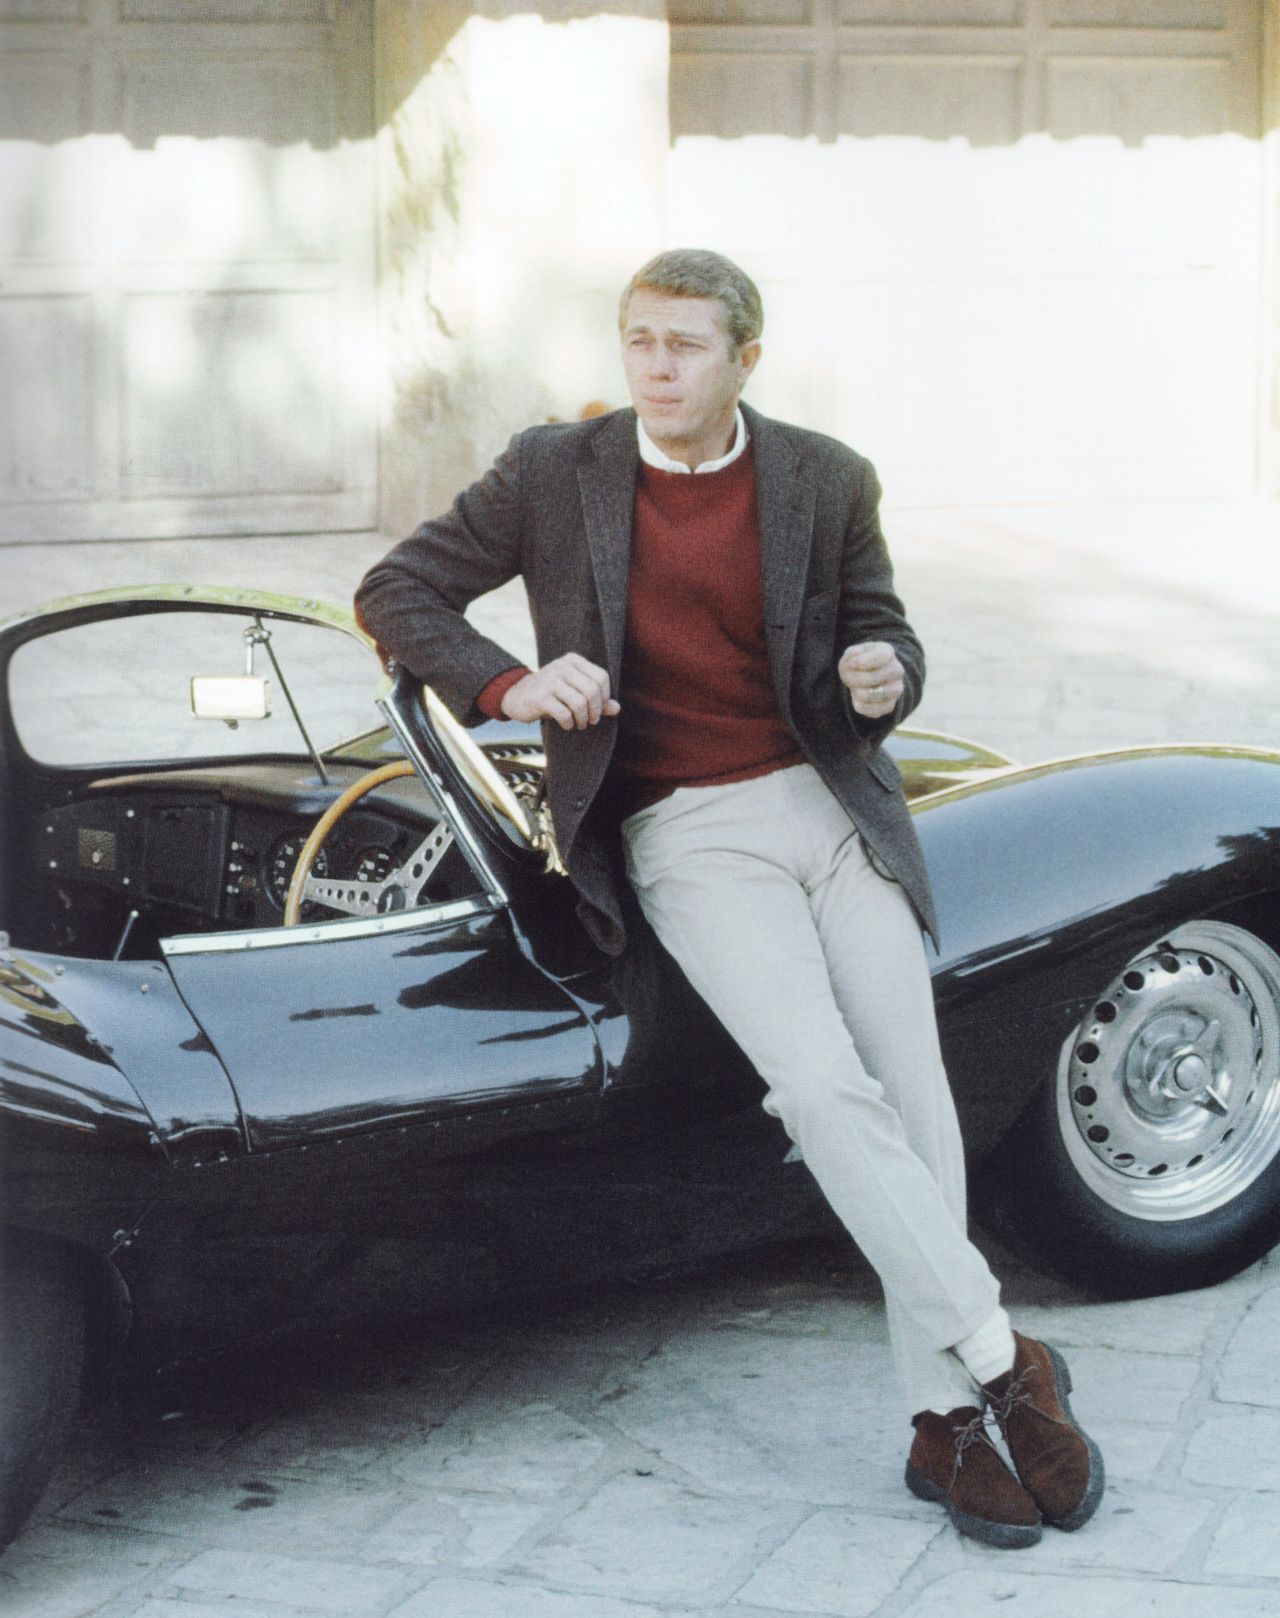 Steve McQueen wearing neutral chinos and blazer, resting against a vintage car